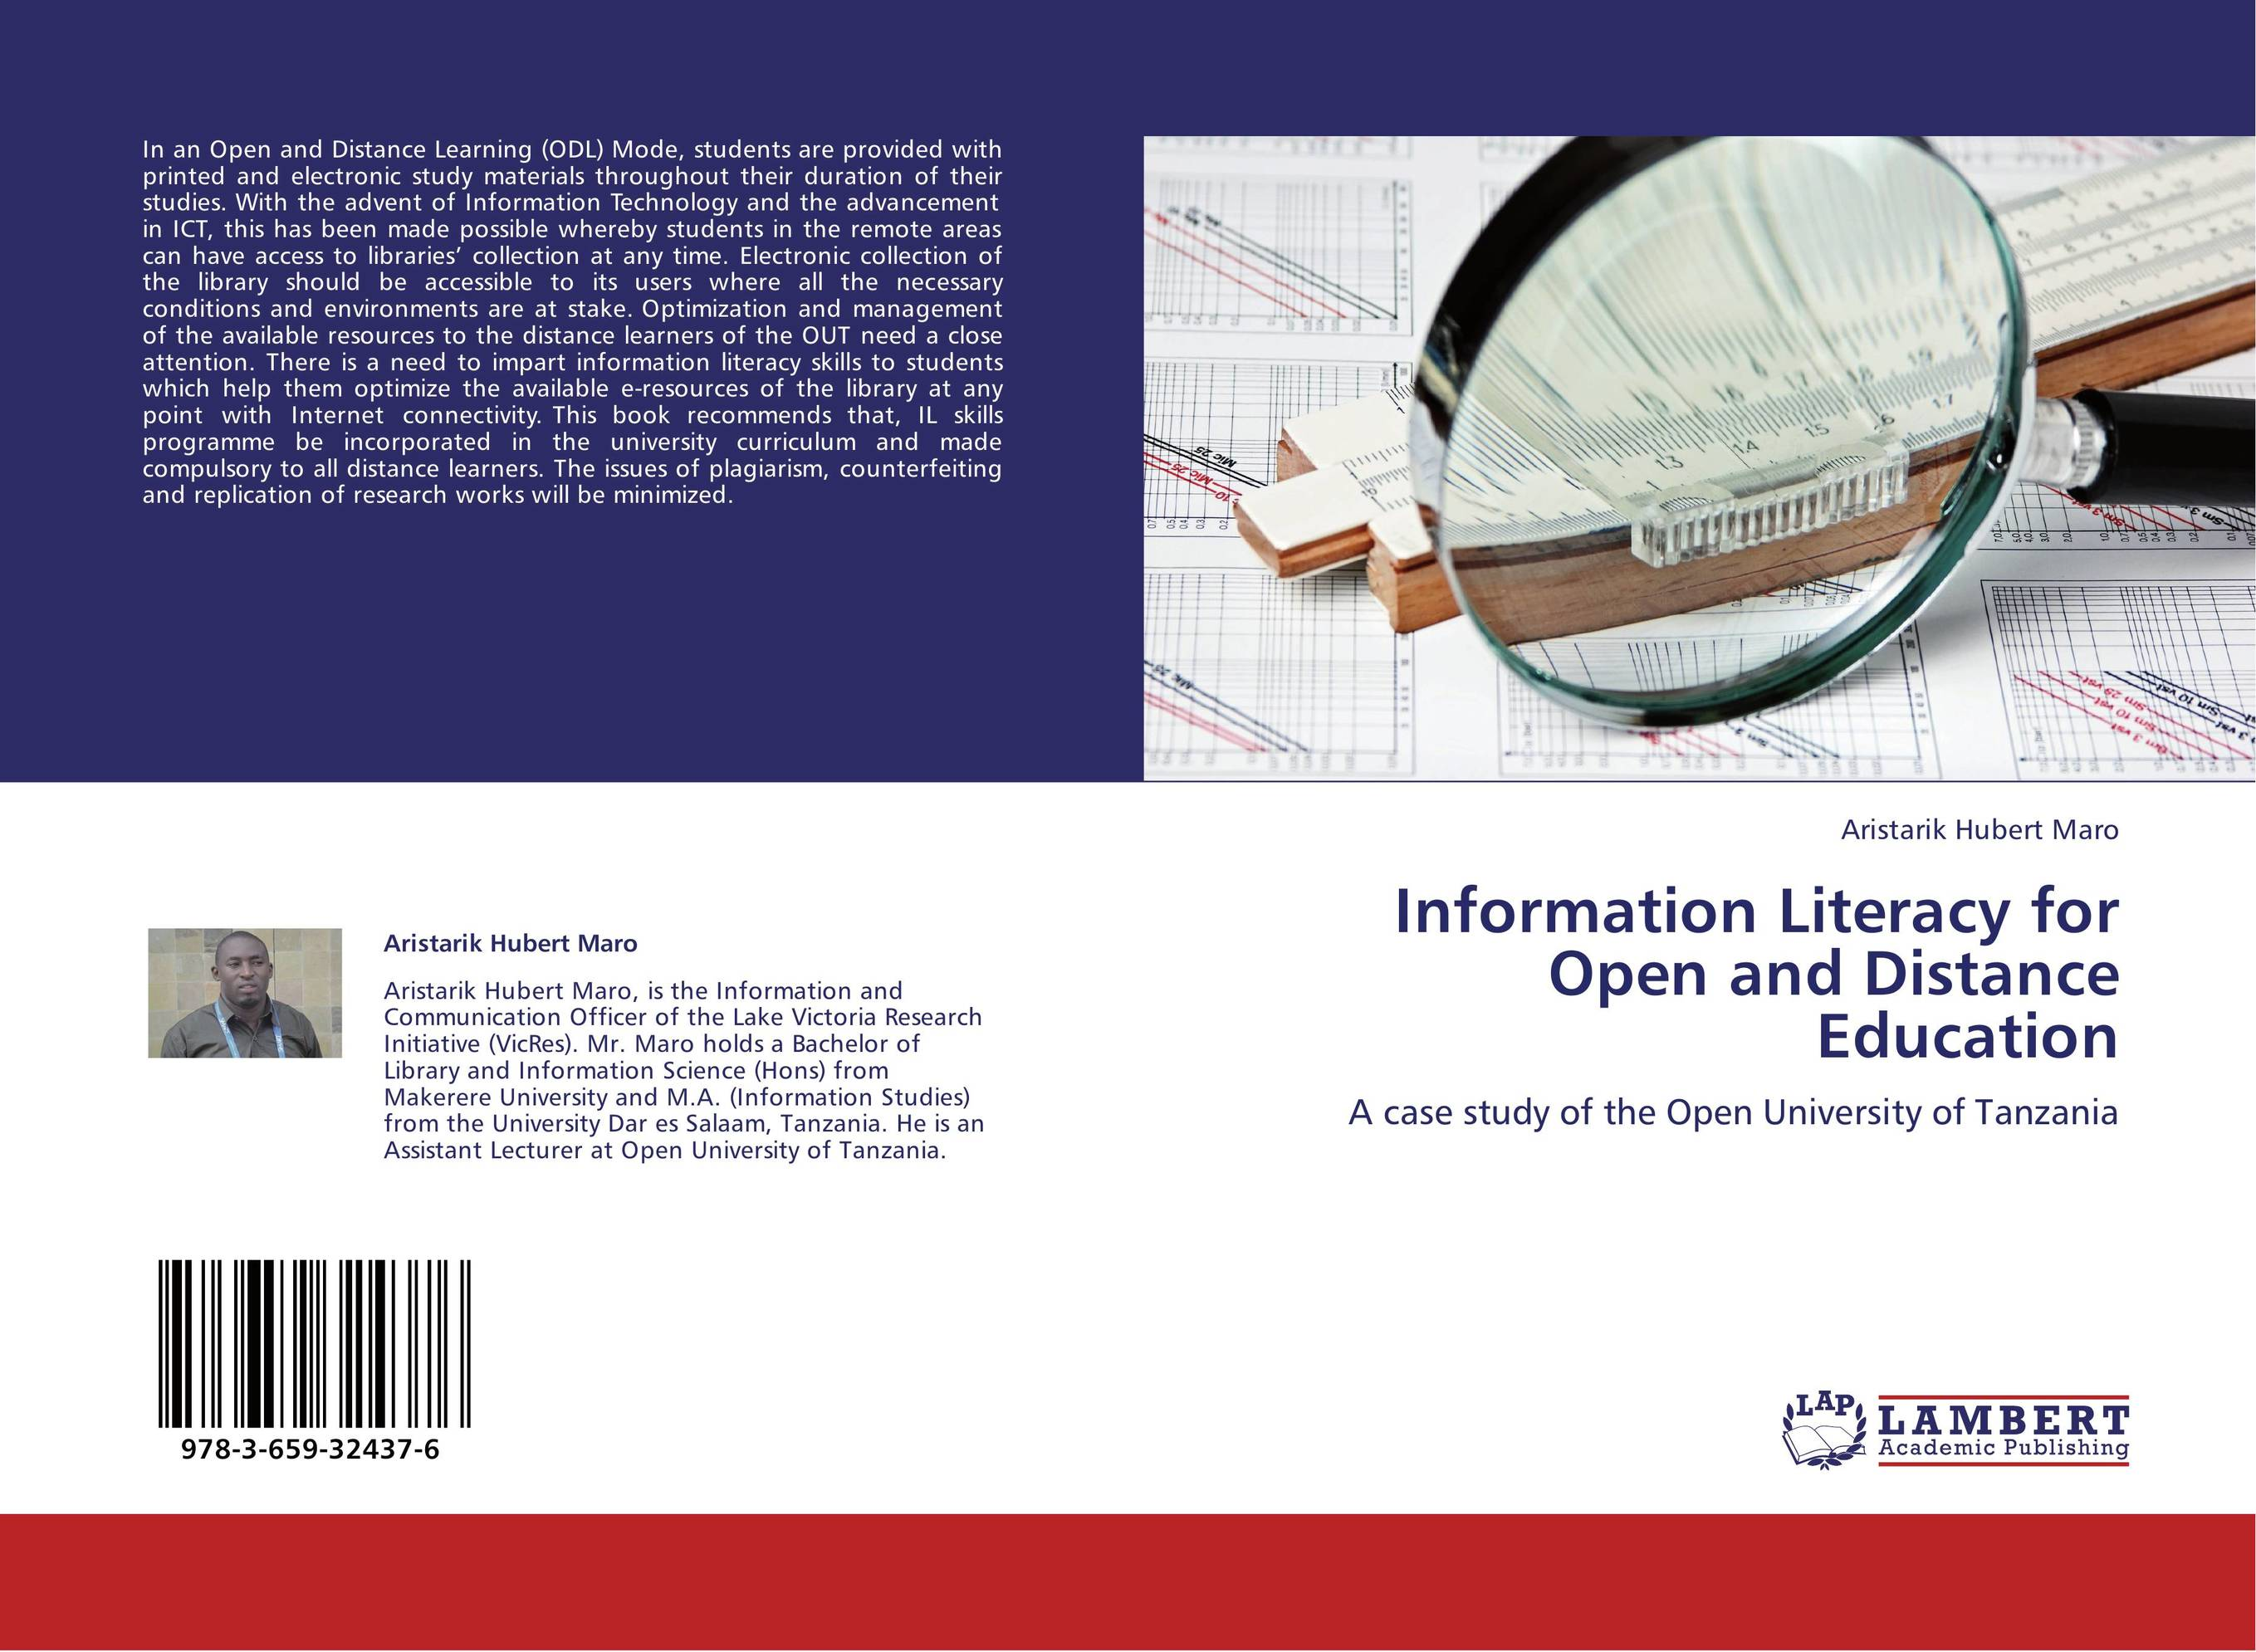 an analysis of the literacy distance education programmes Relevant course work penn state's 30-credit online master of education in lifelong learning and adult education curriculum (18 credits of which must be at the 500 level or higher) focuses on the knowledge and skills required to develop professionals who work with adult learners.